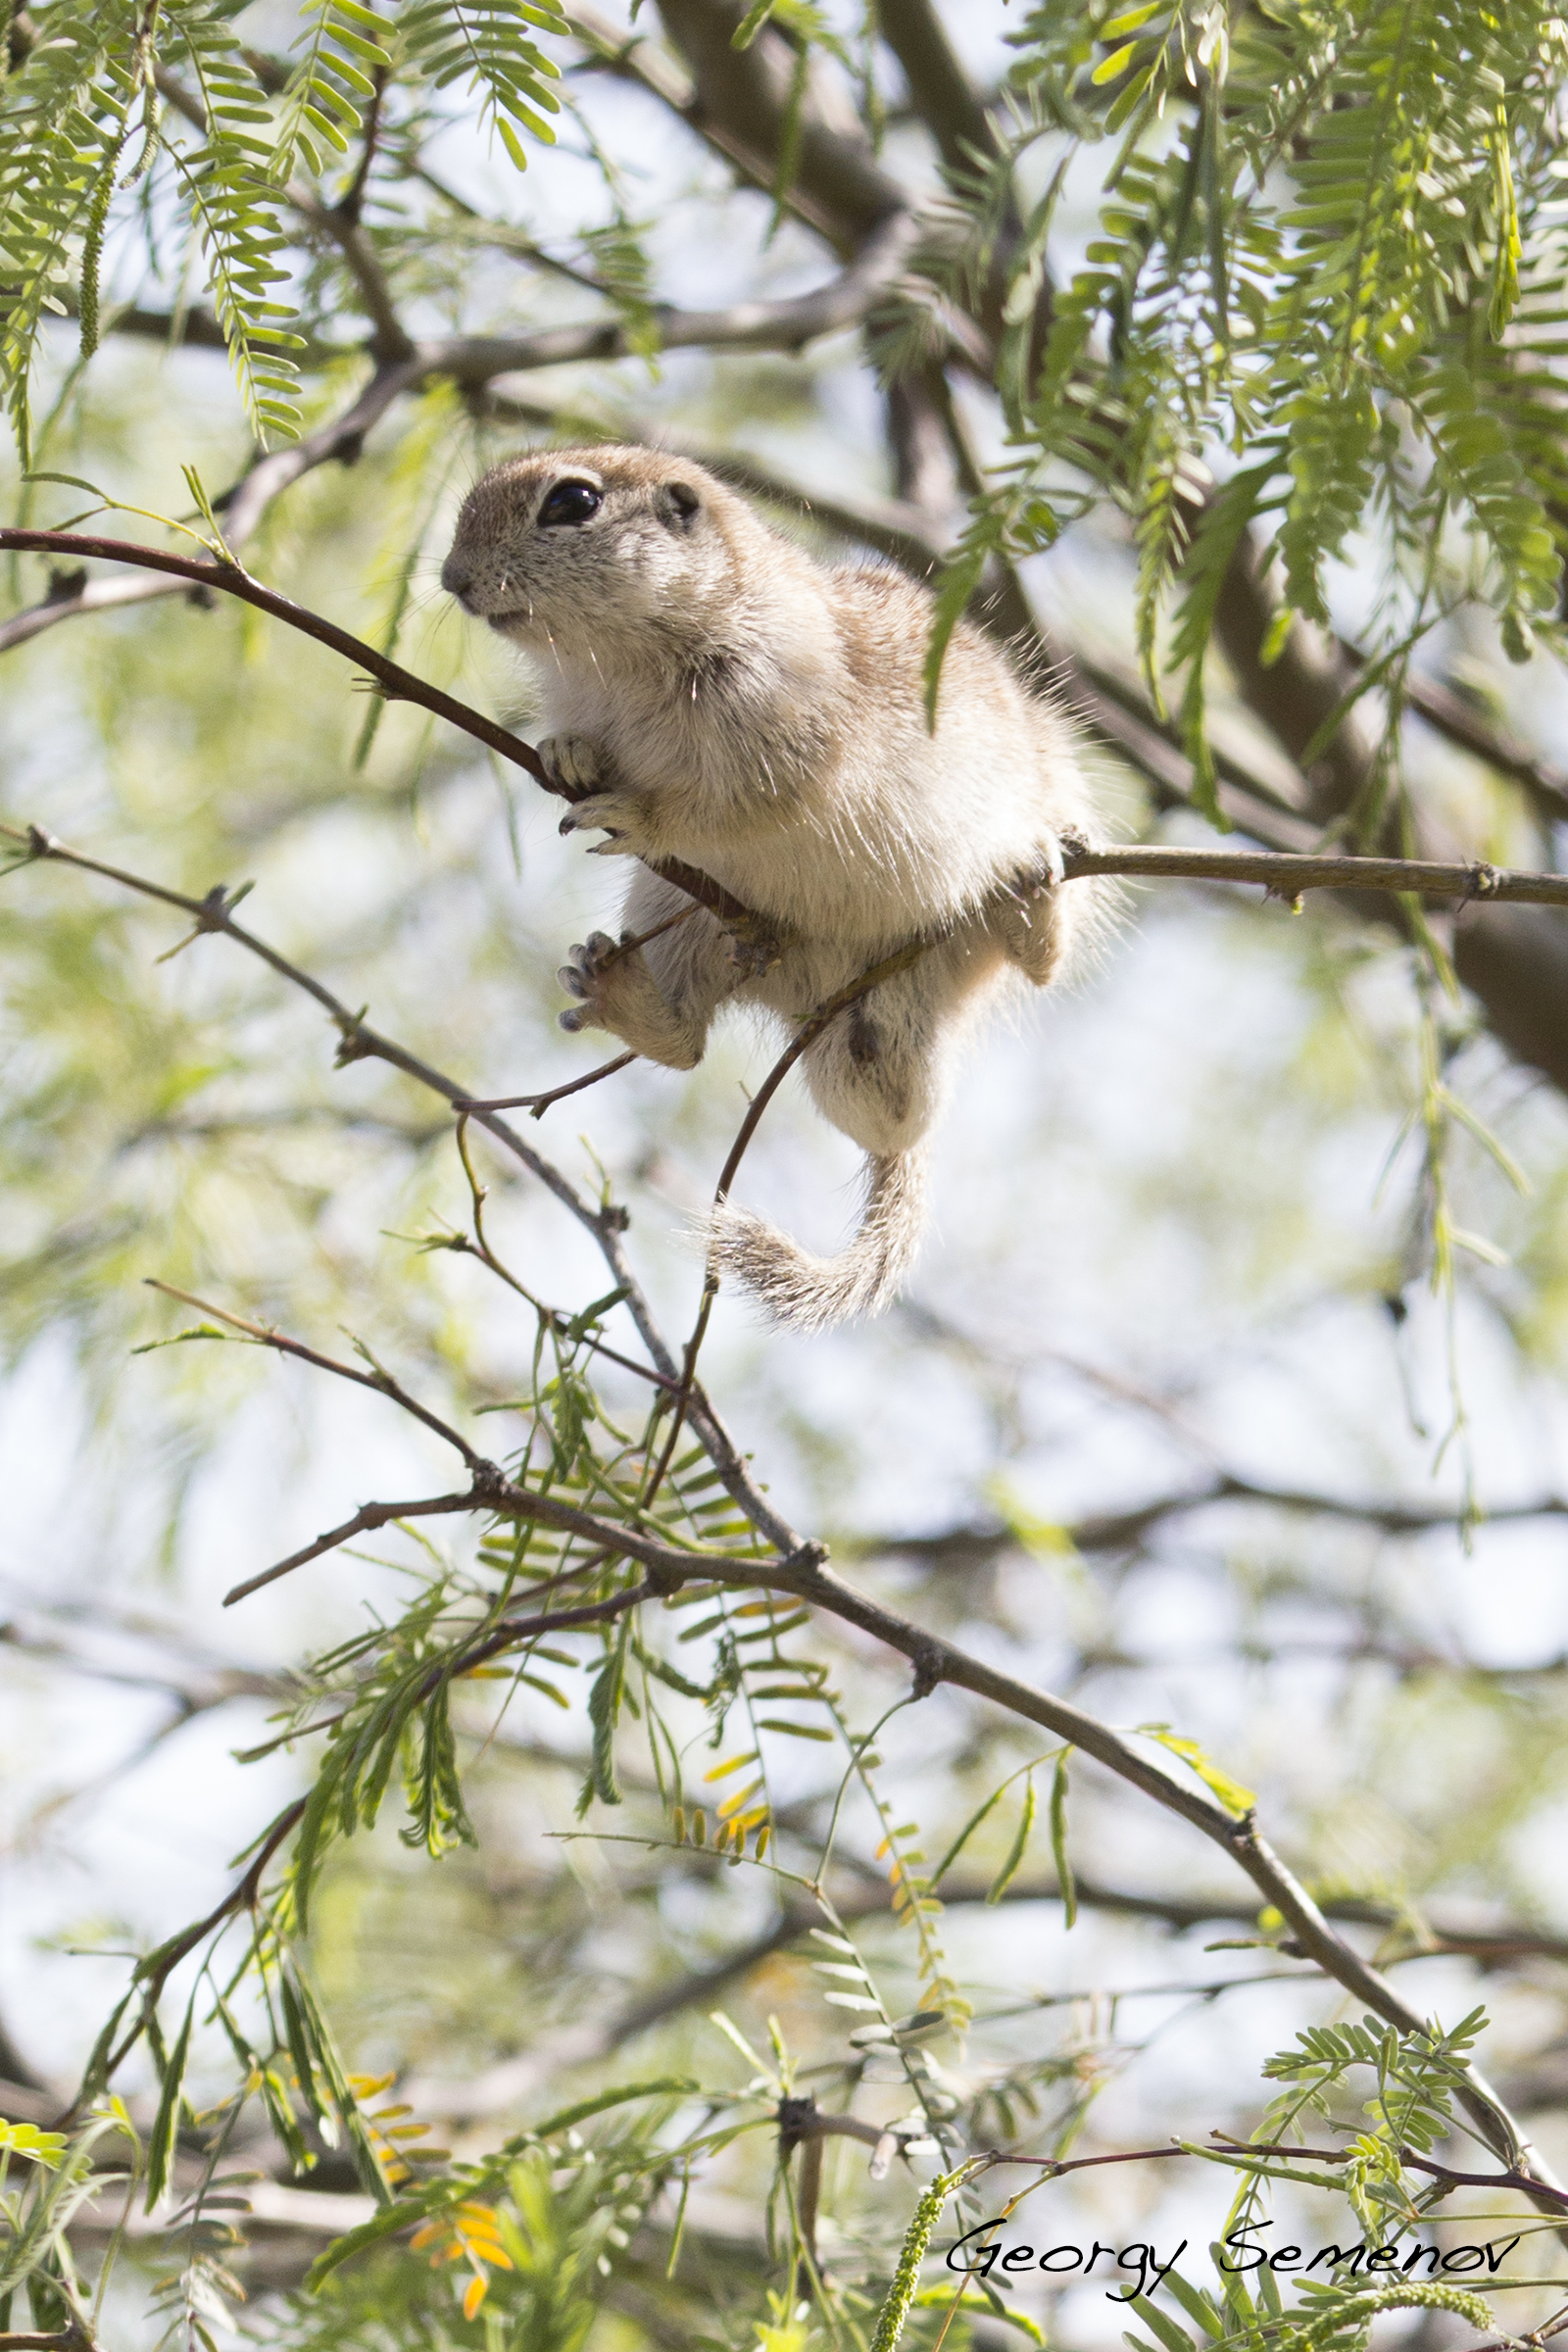 roung-tailed-ground-squirrel_25444190710_o.jpg